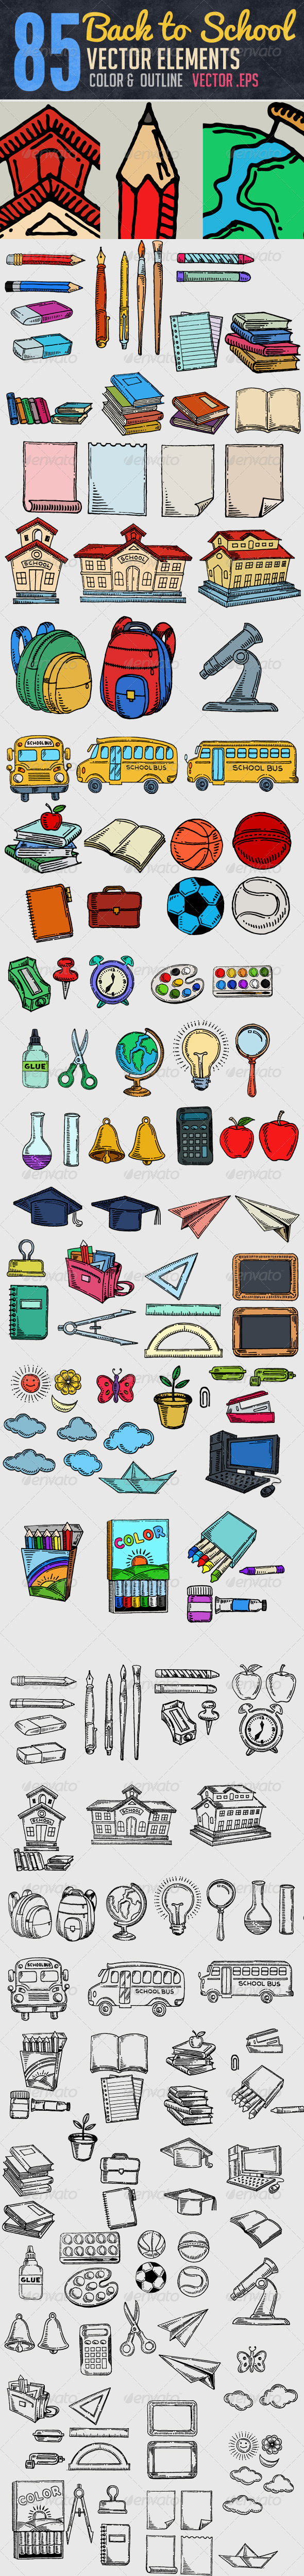 GraphicRiver 85 Hand Drawn School Elements 8389960